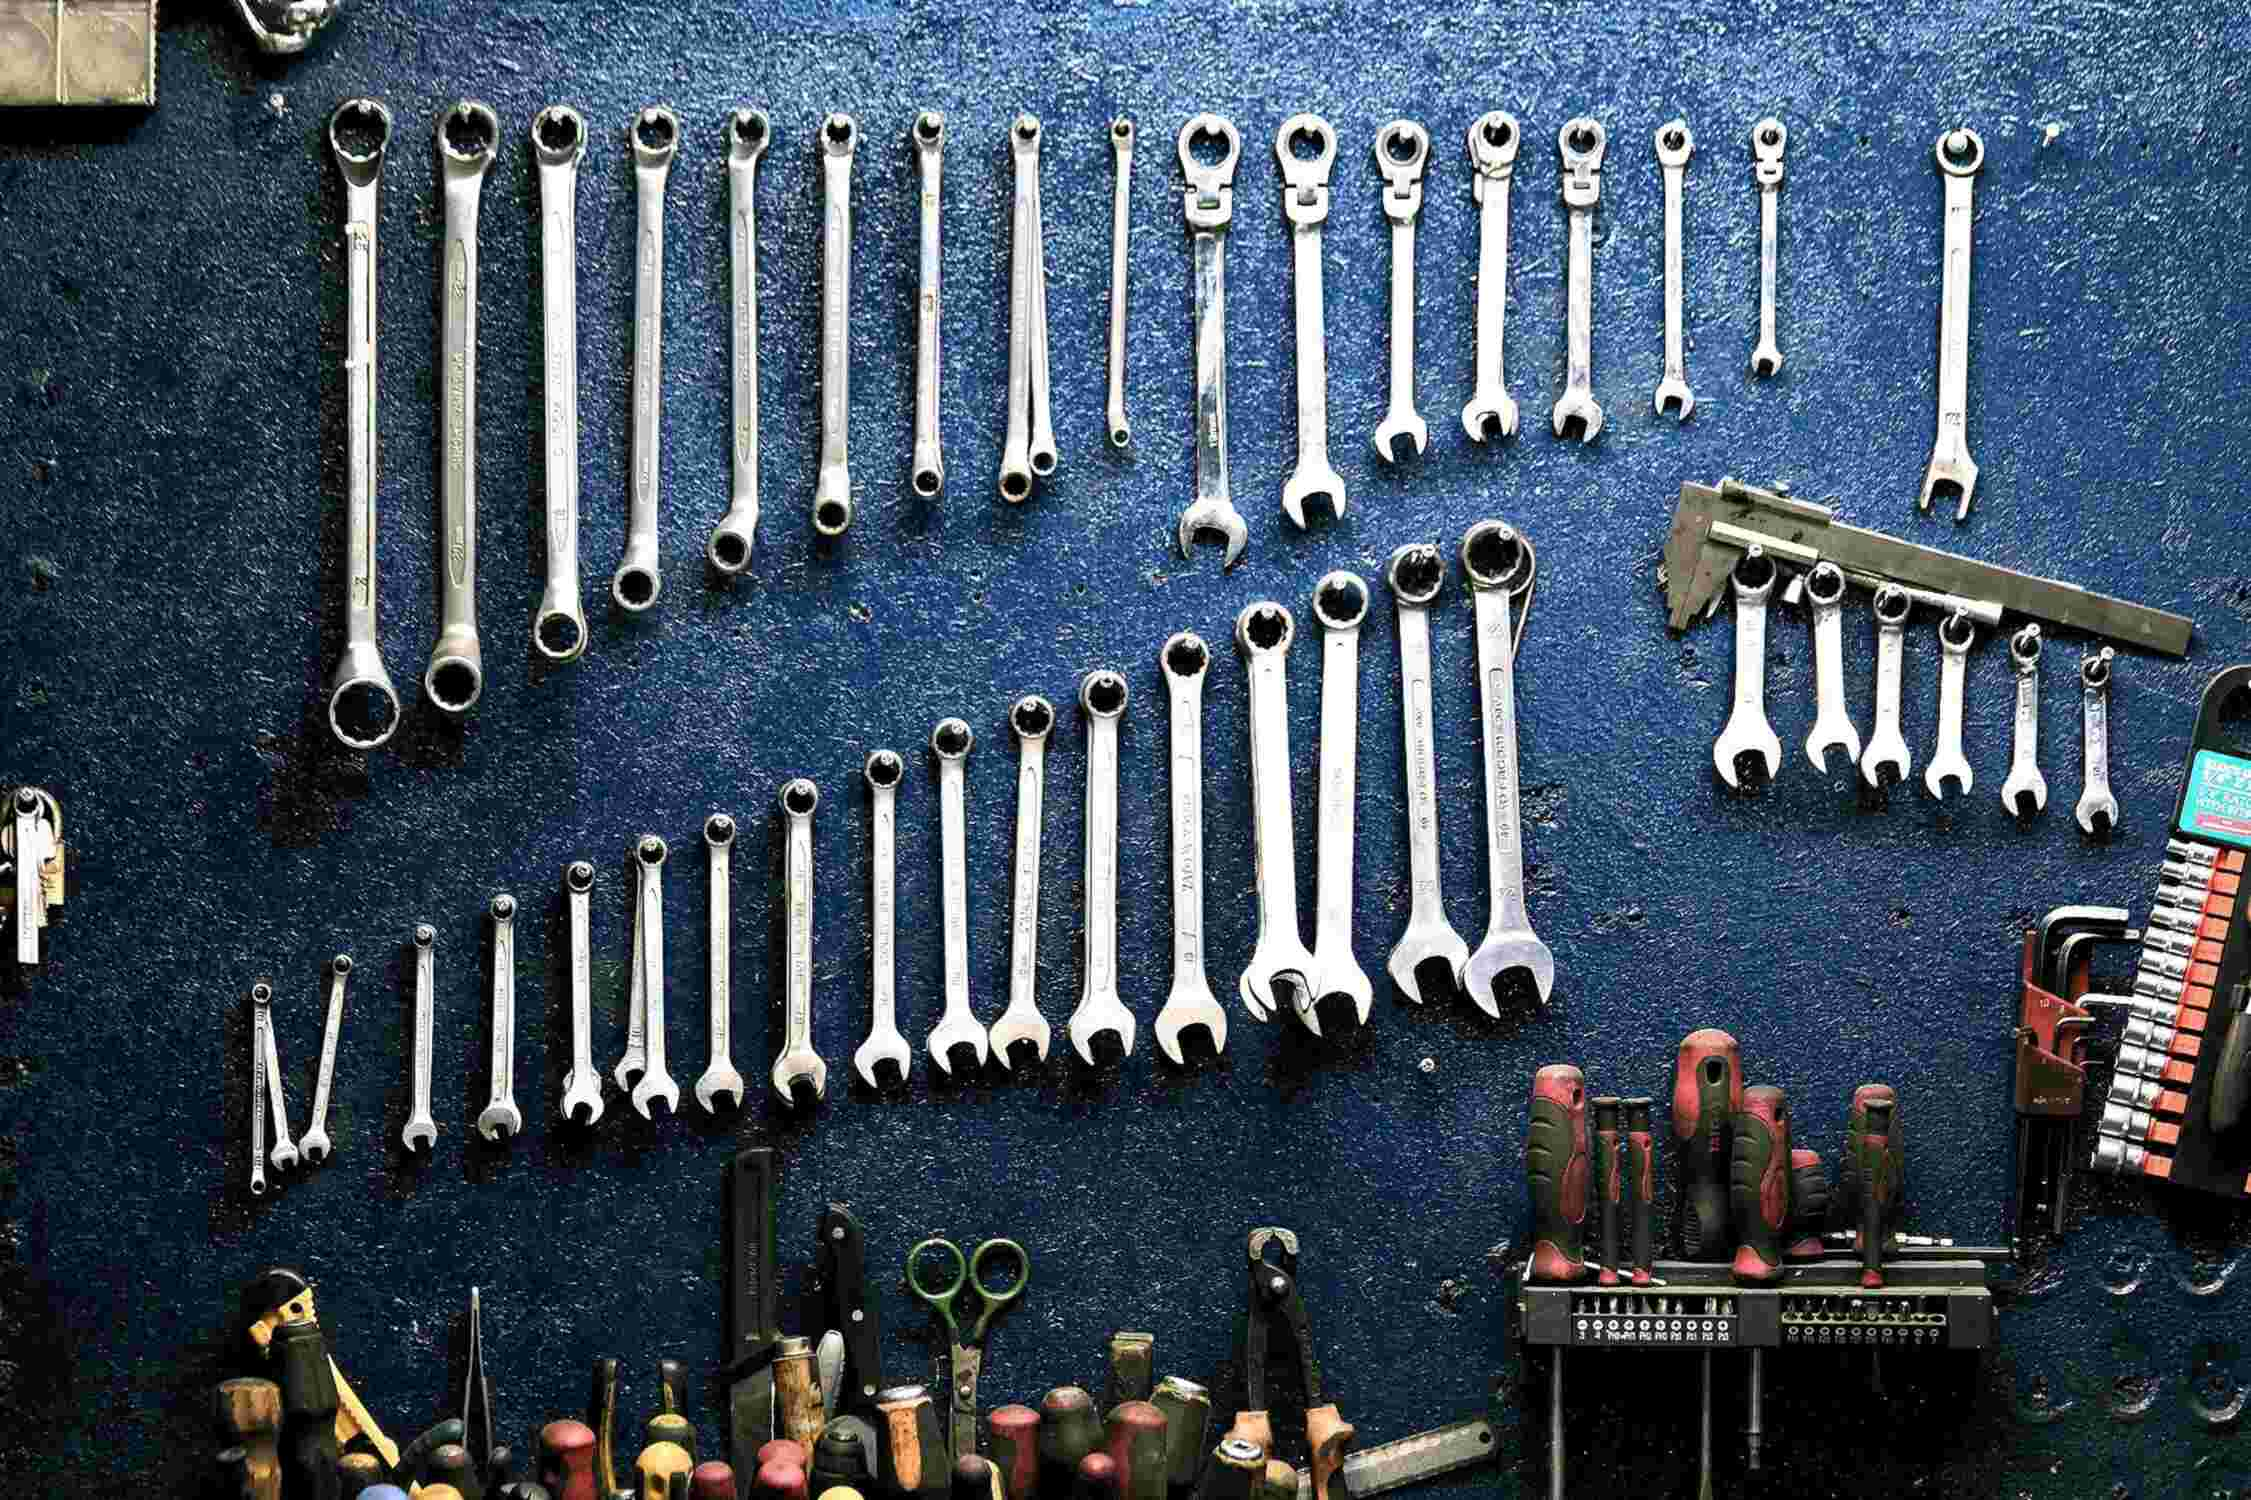 Wrenches of various sizes on blue wall